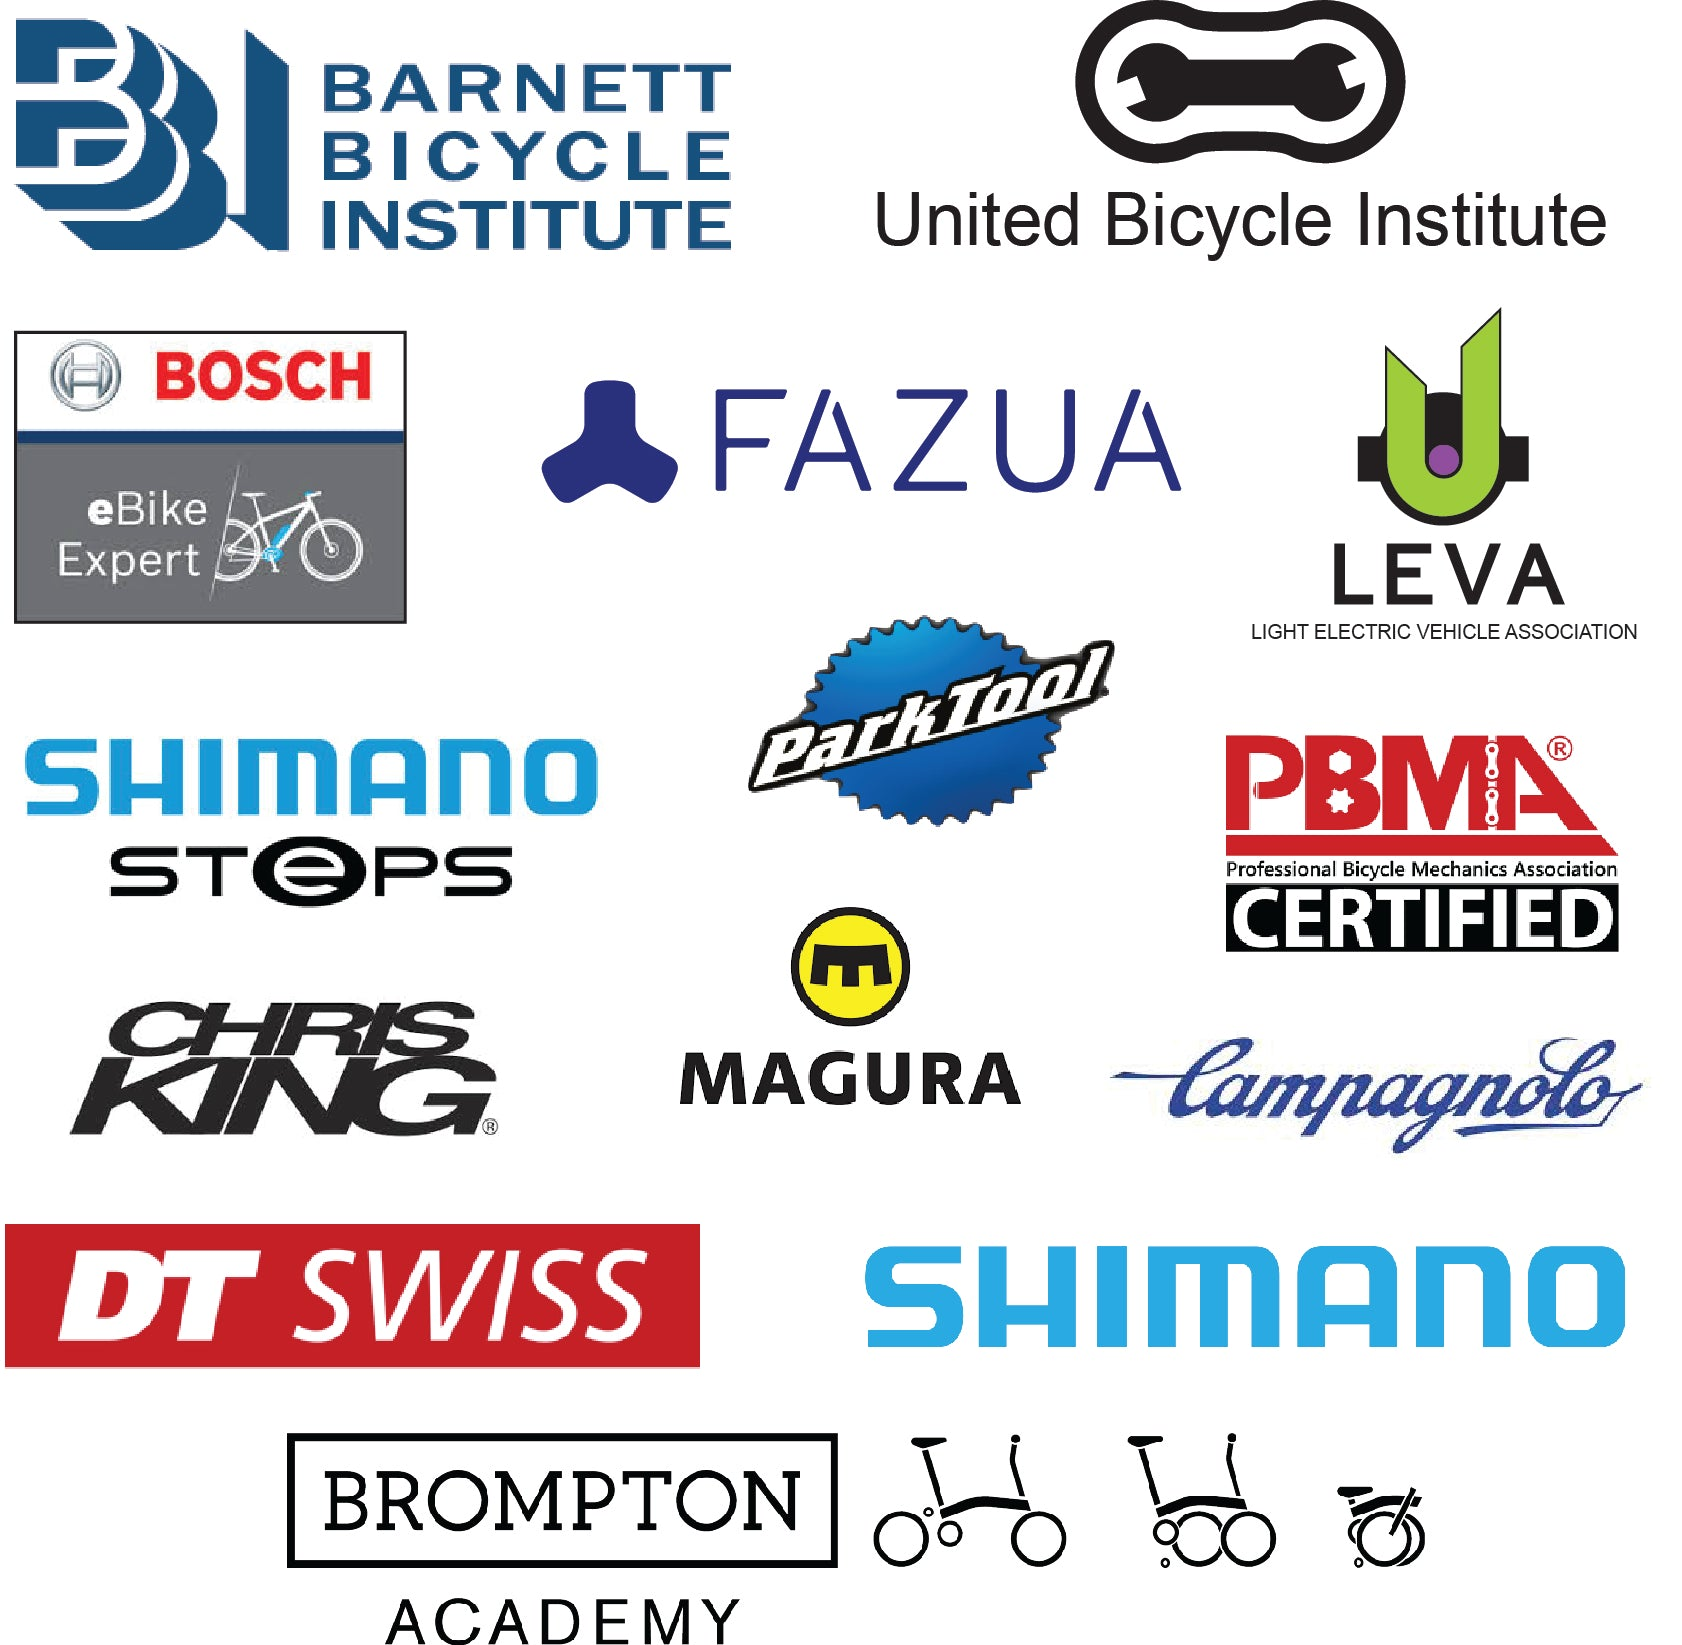 Ashburn Bicycle Repair mechanics are certified by the Barnett Bicycle Institute, the United Bicycle Institute, Bosch, Fazua, LEVA, Shimano, Park Tool, Professional Bicycle Mechanics Association, Chris King, Magura, Campagnolo, DT Swiss, and Brompton.